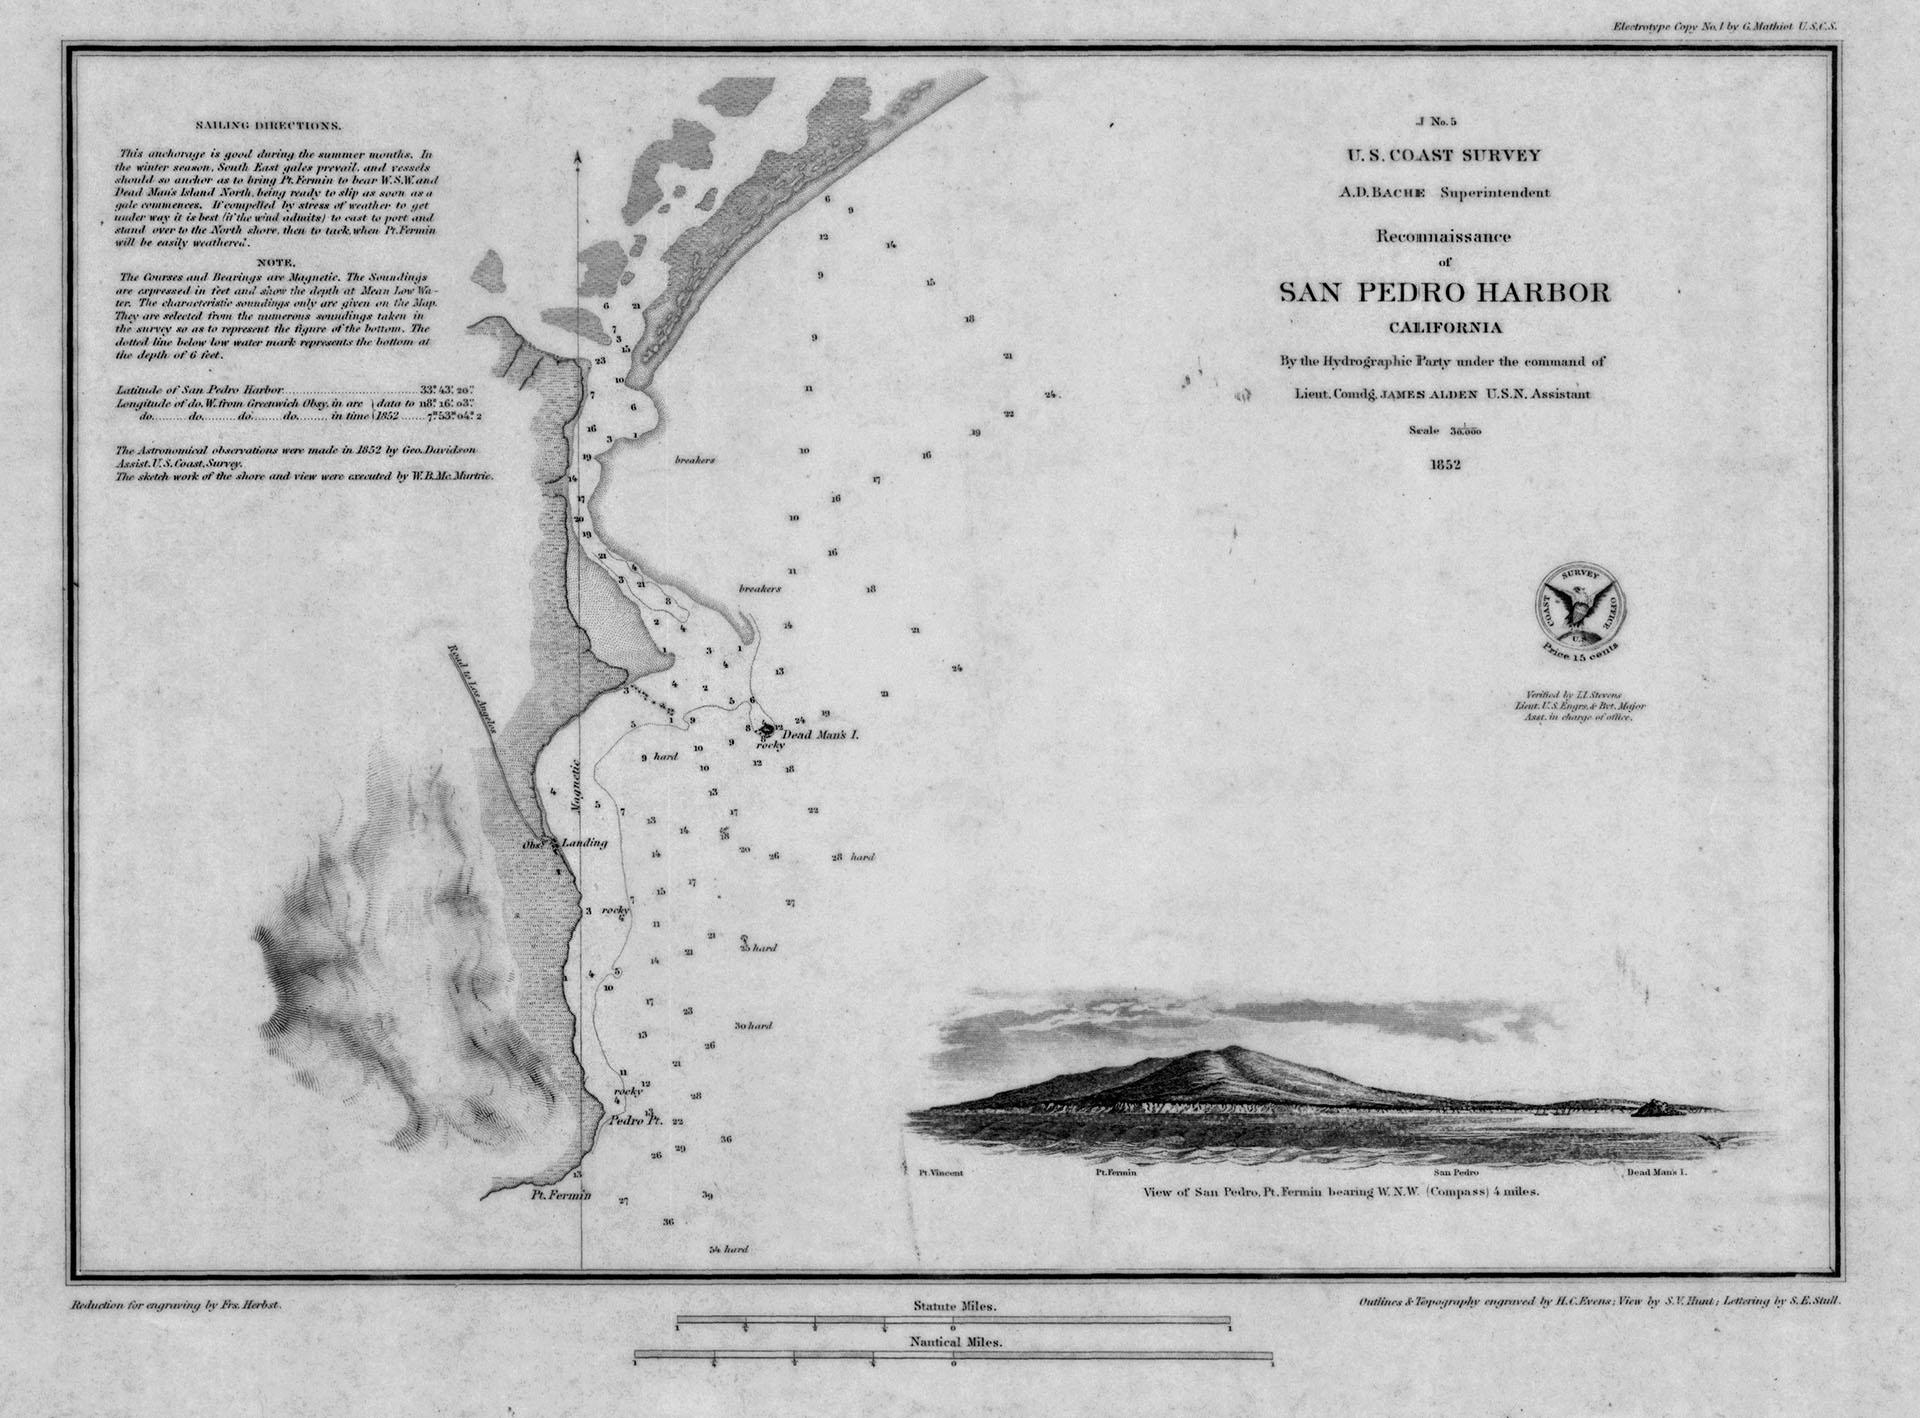 Chart of San Pedro Harbor in 1859